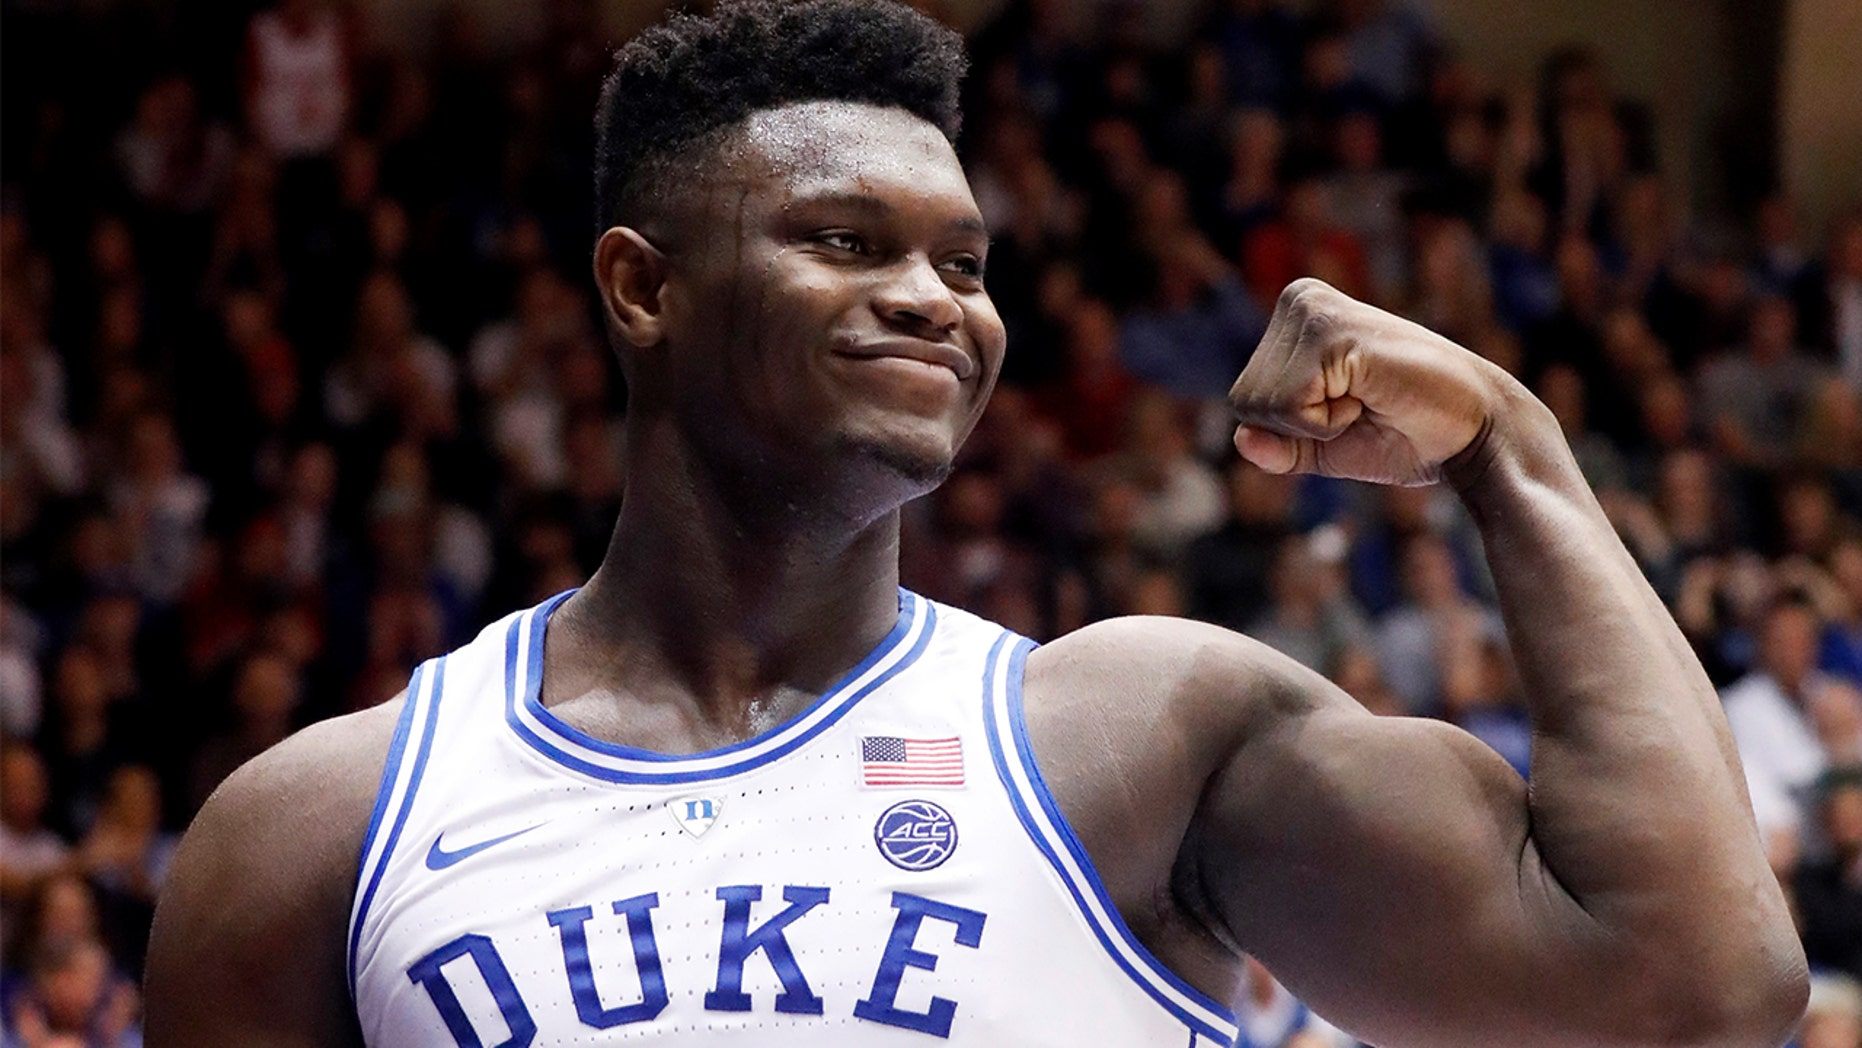 Duke's Zion Williamson destroyed his shoe during a game against the Tar Heels Wednesday night.